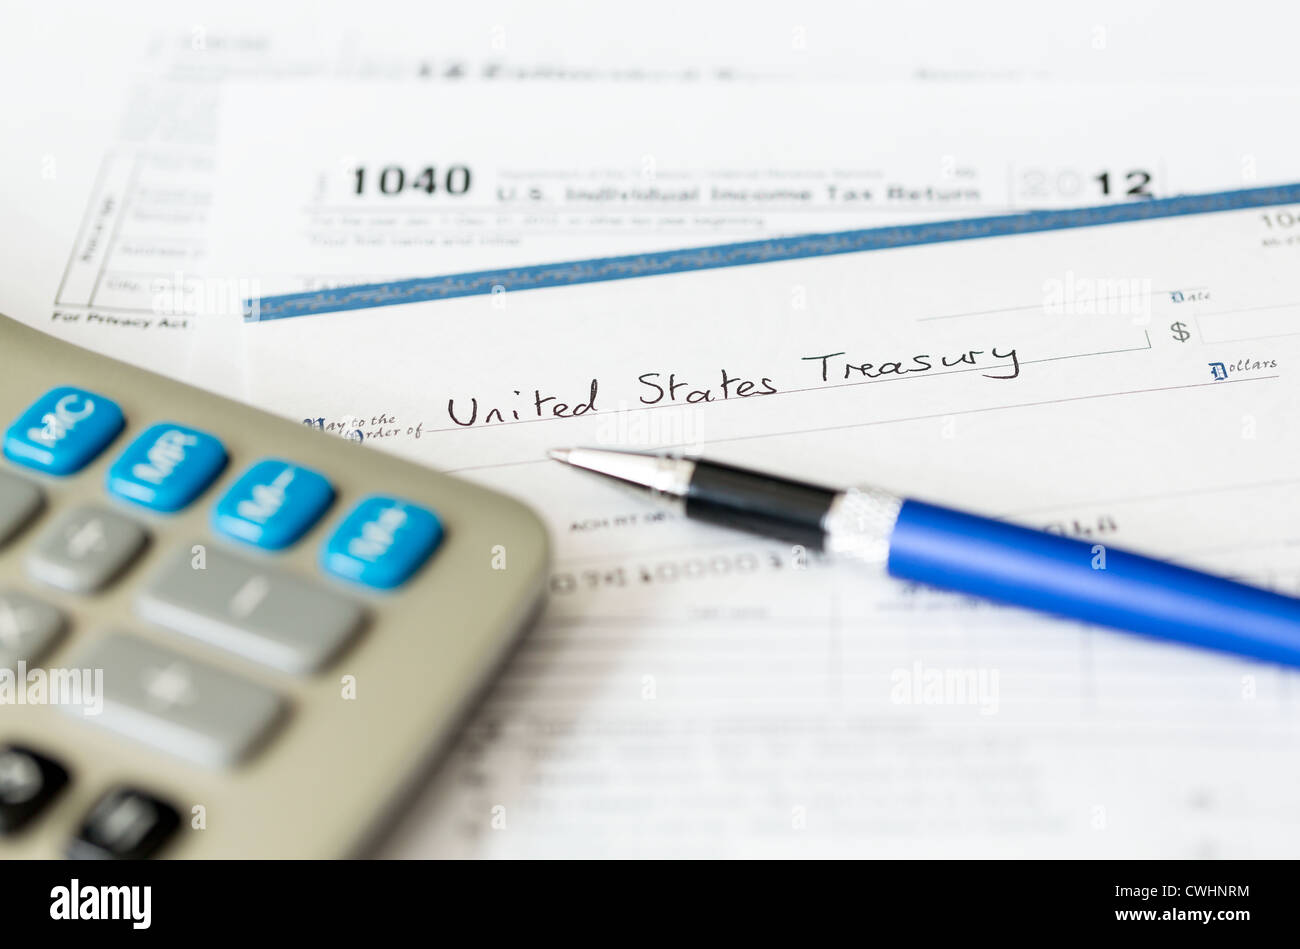 Tax form 1040 for tax year 2012 for us individual tax return with tax form 1040 for tax year 2012 for us individual tax return with pen and check falaconquin